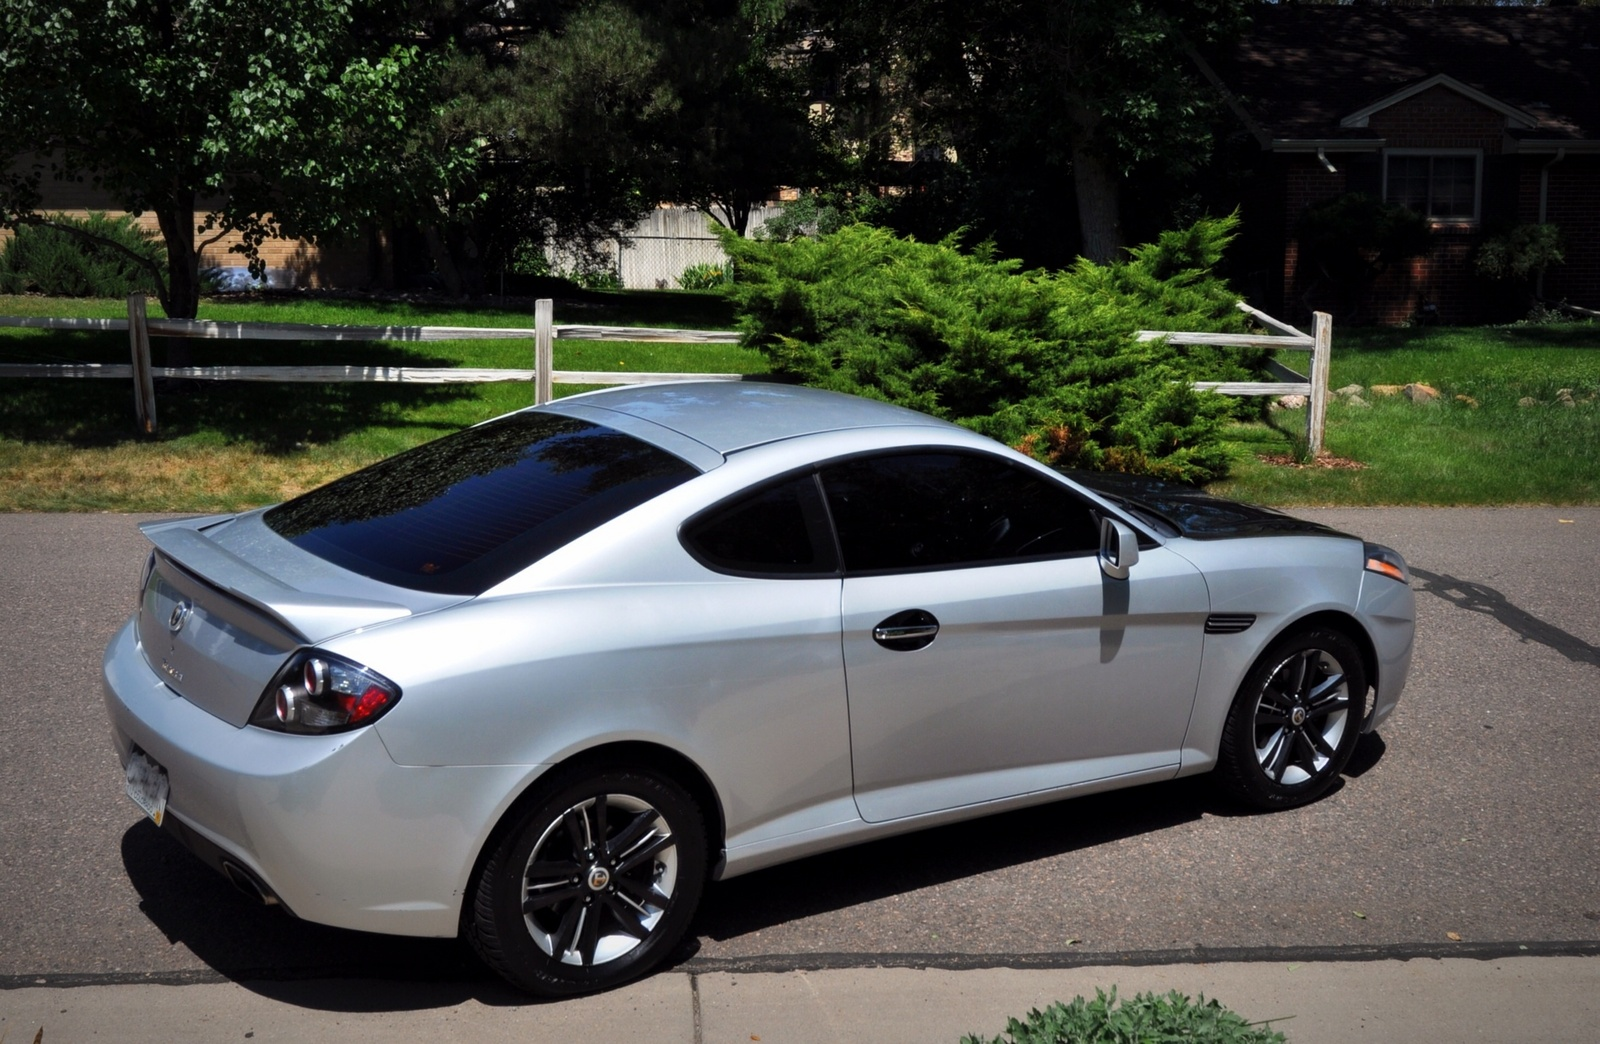 2008 hyundai tiburon exterior pictures cargurus. Black Bedroom Furniture Sets. Home Design Ideas